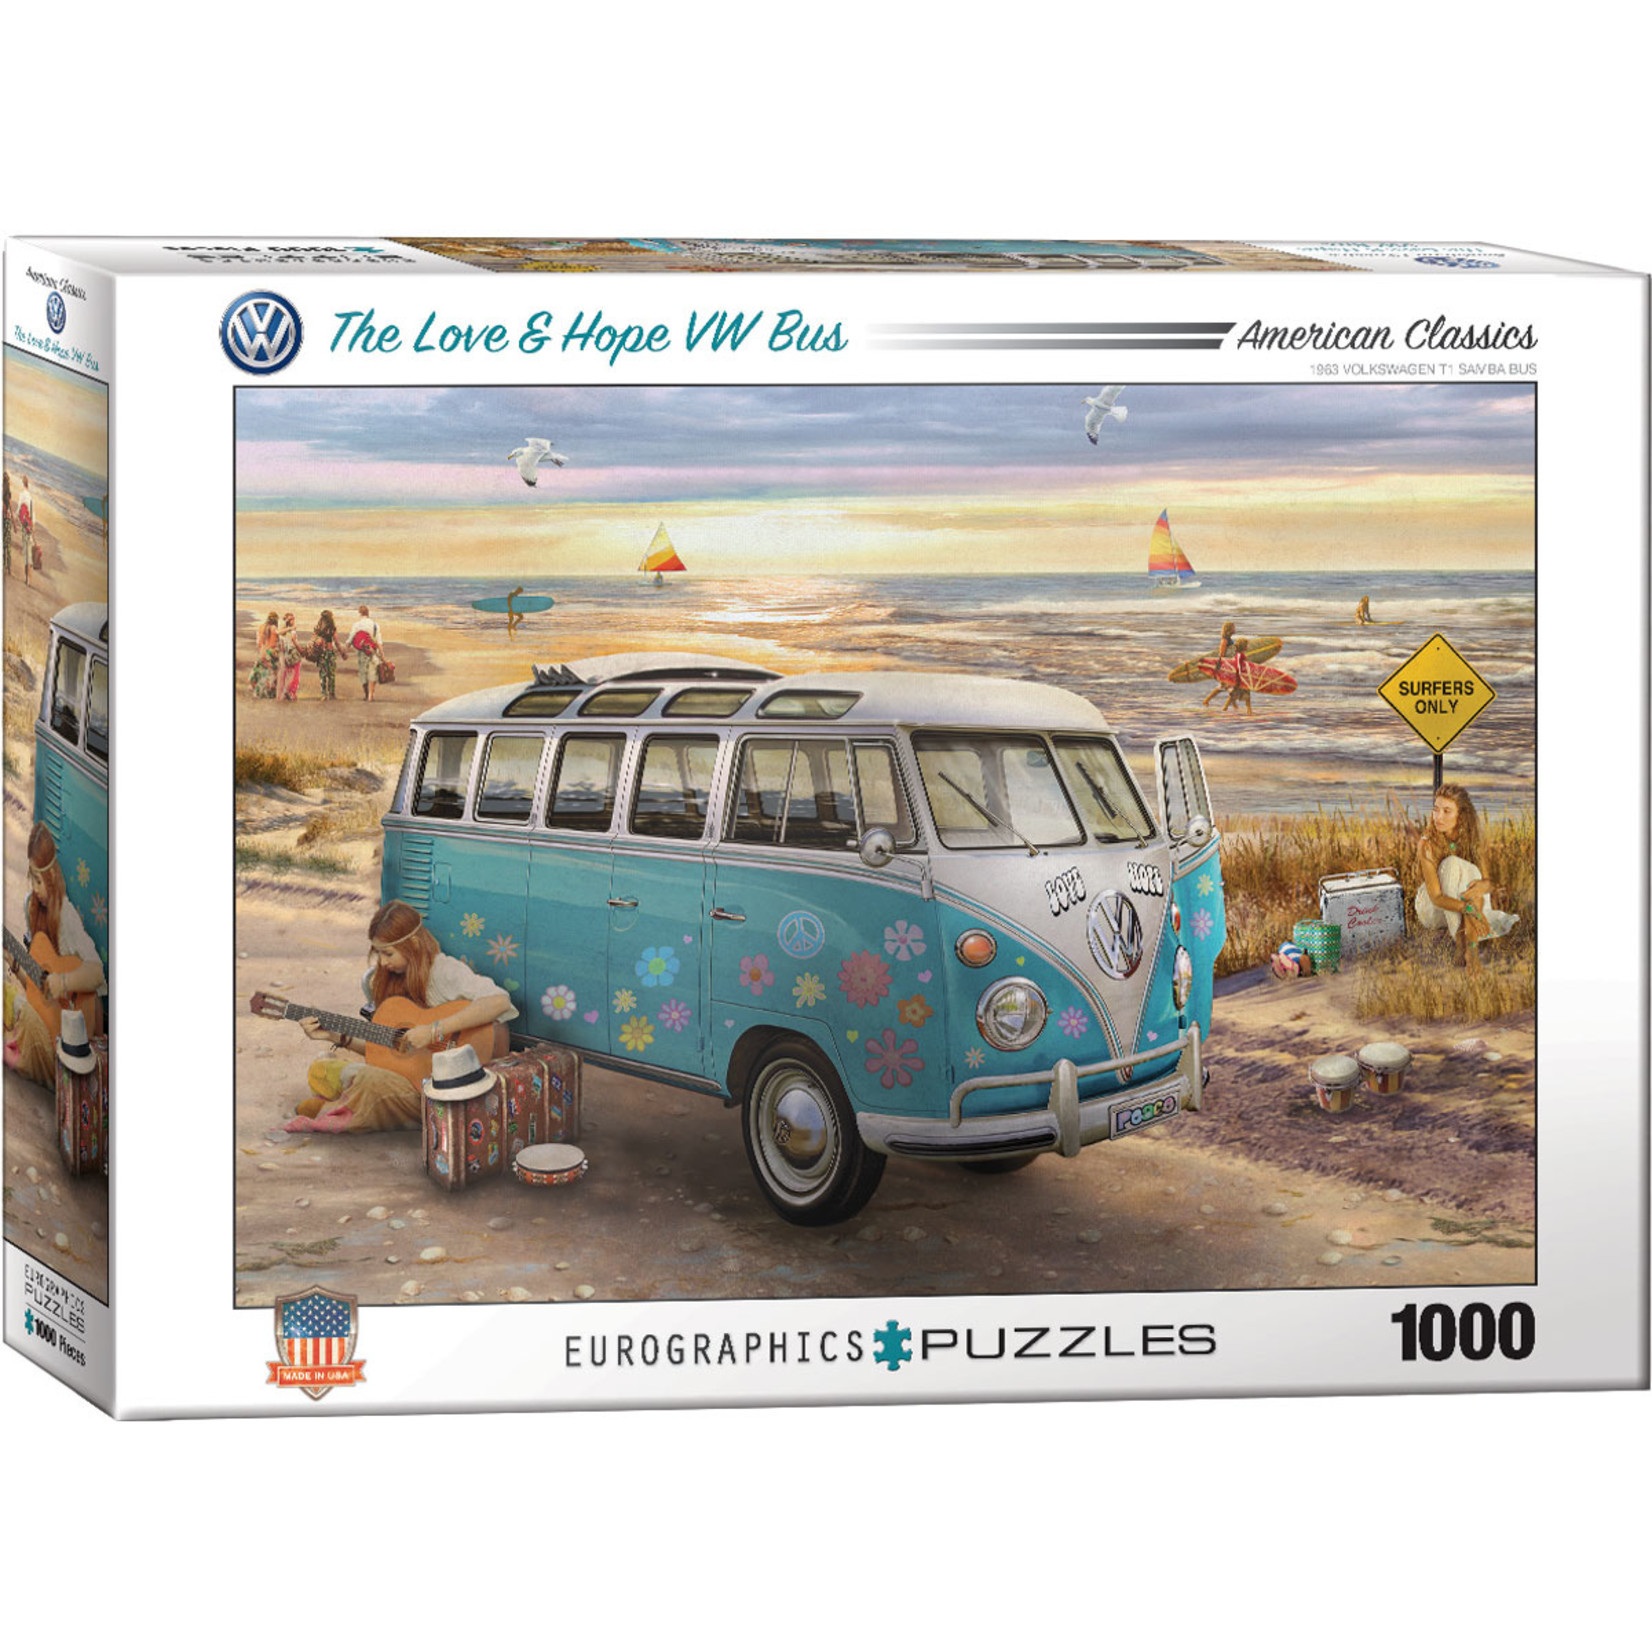 EuroGraphics Puzzles The Love & Hope VW Bus 1000 Pc